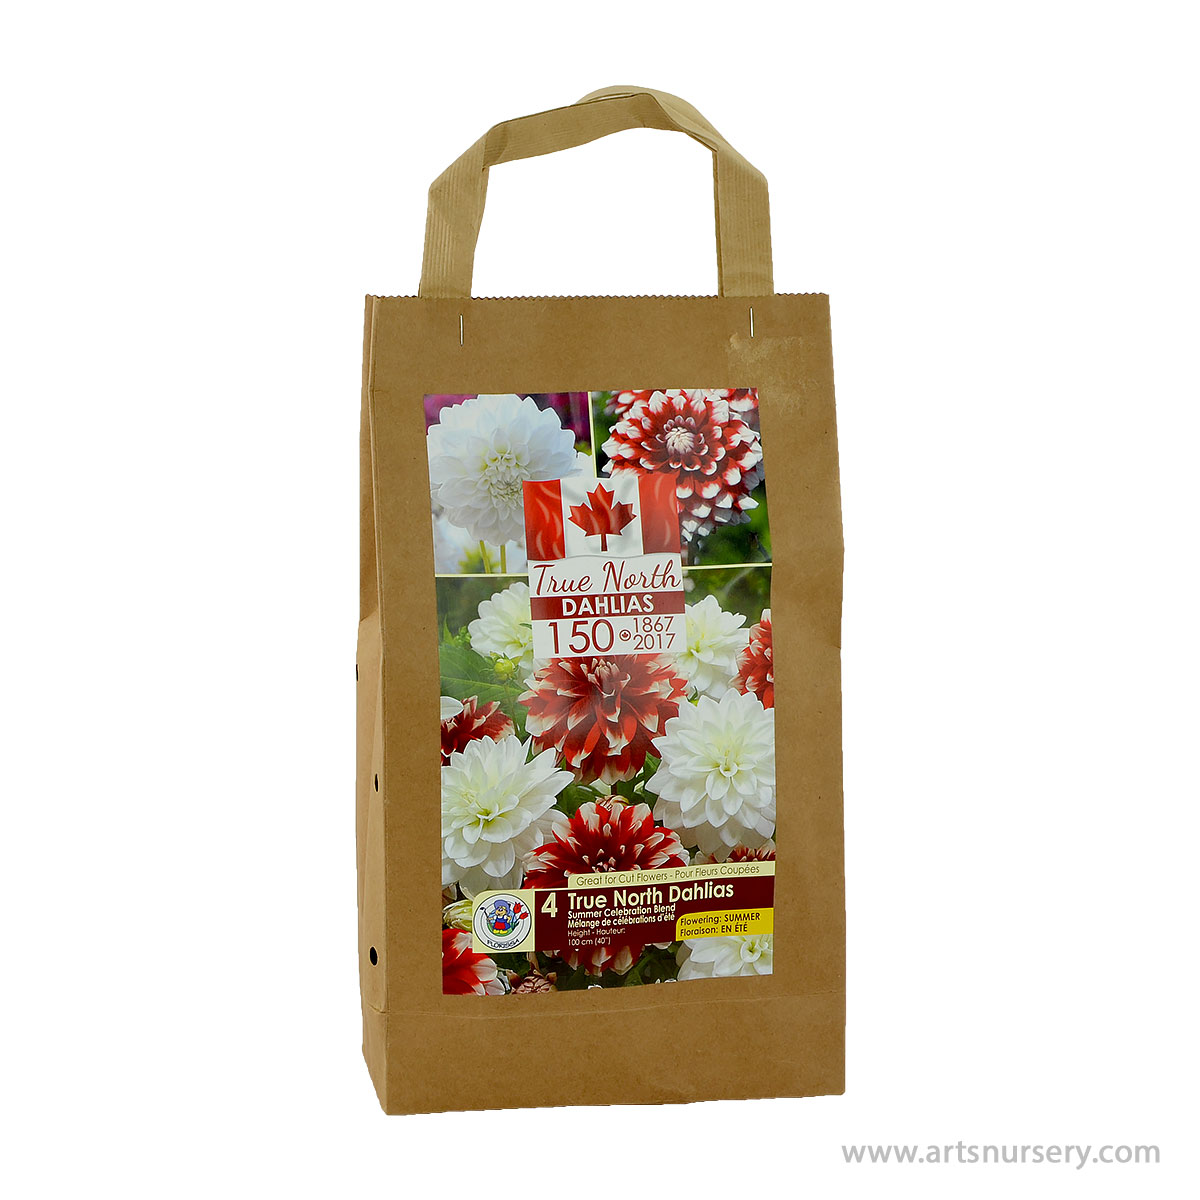 True North Dahlia Tuber Kit